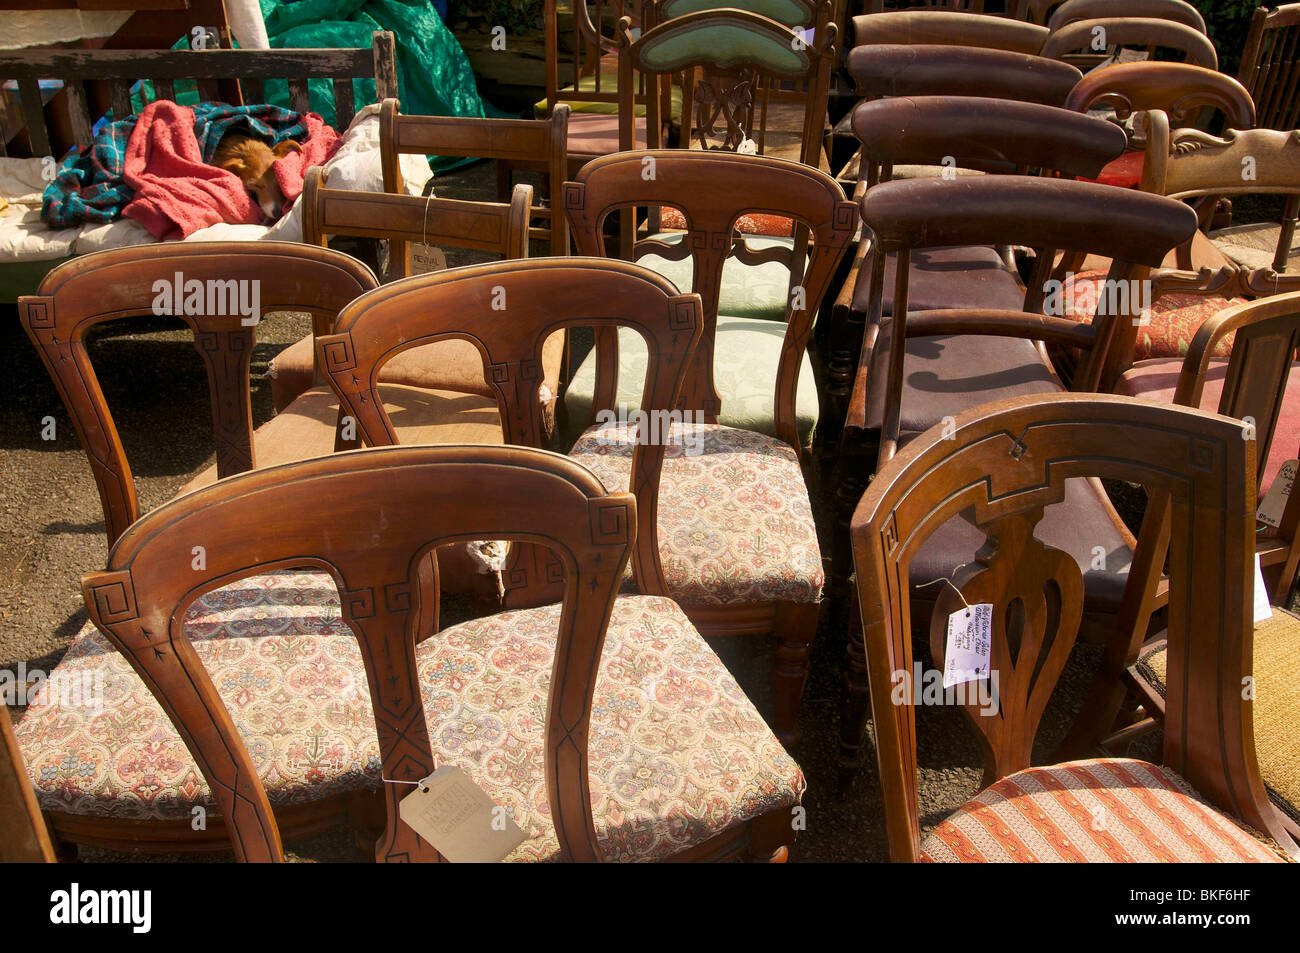 Restored old chairs. - Stock Image